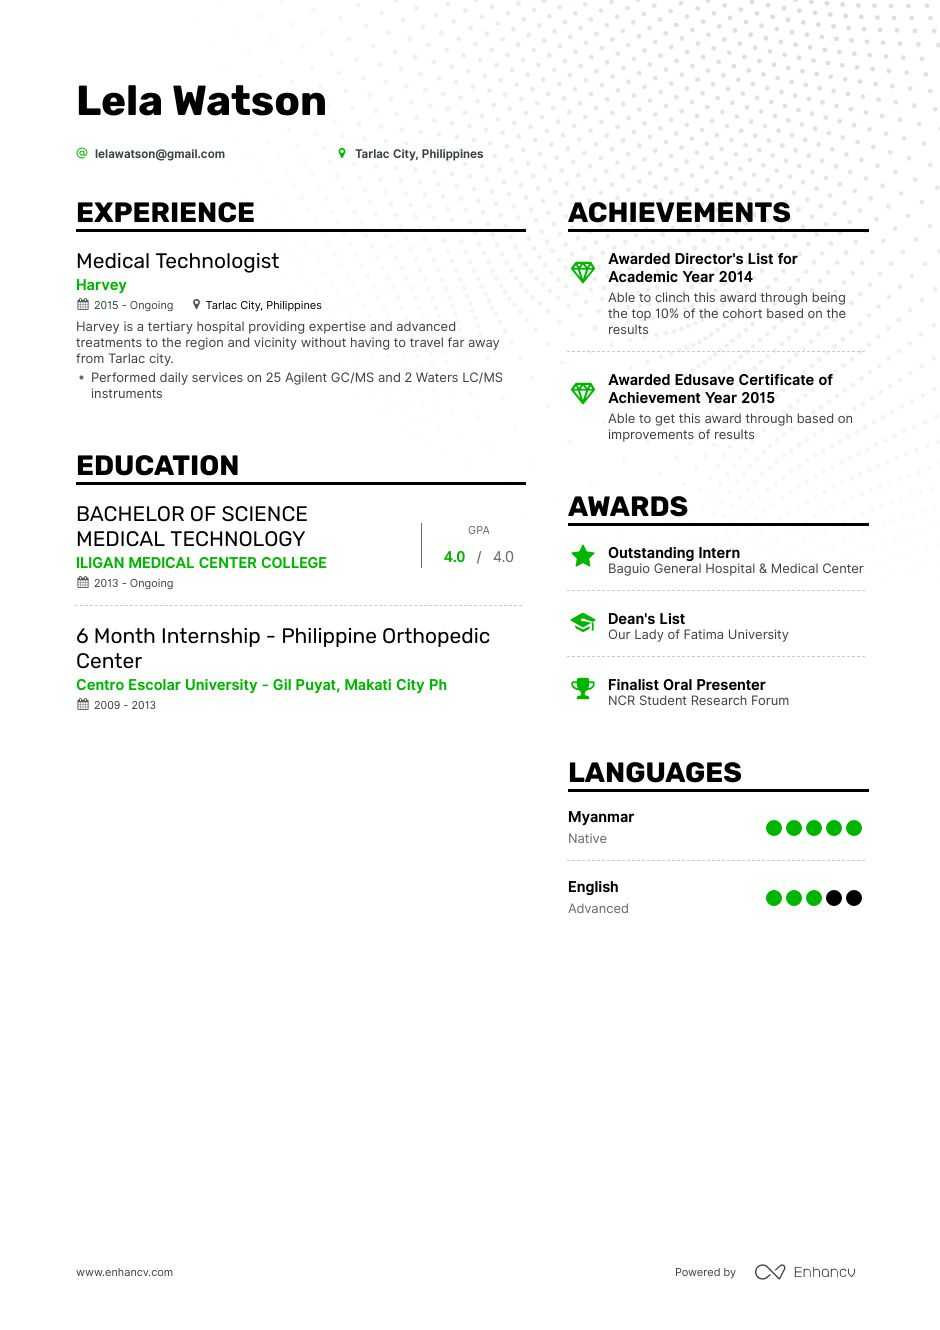 medical lab technologist resume fresh graduate sample for high school template with photo Resume Medical Technologist Resume Fresh Graduate